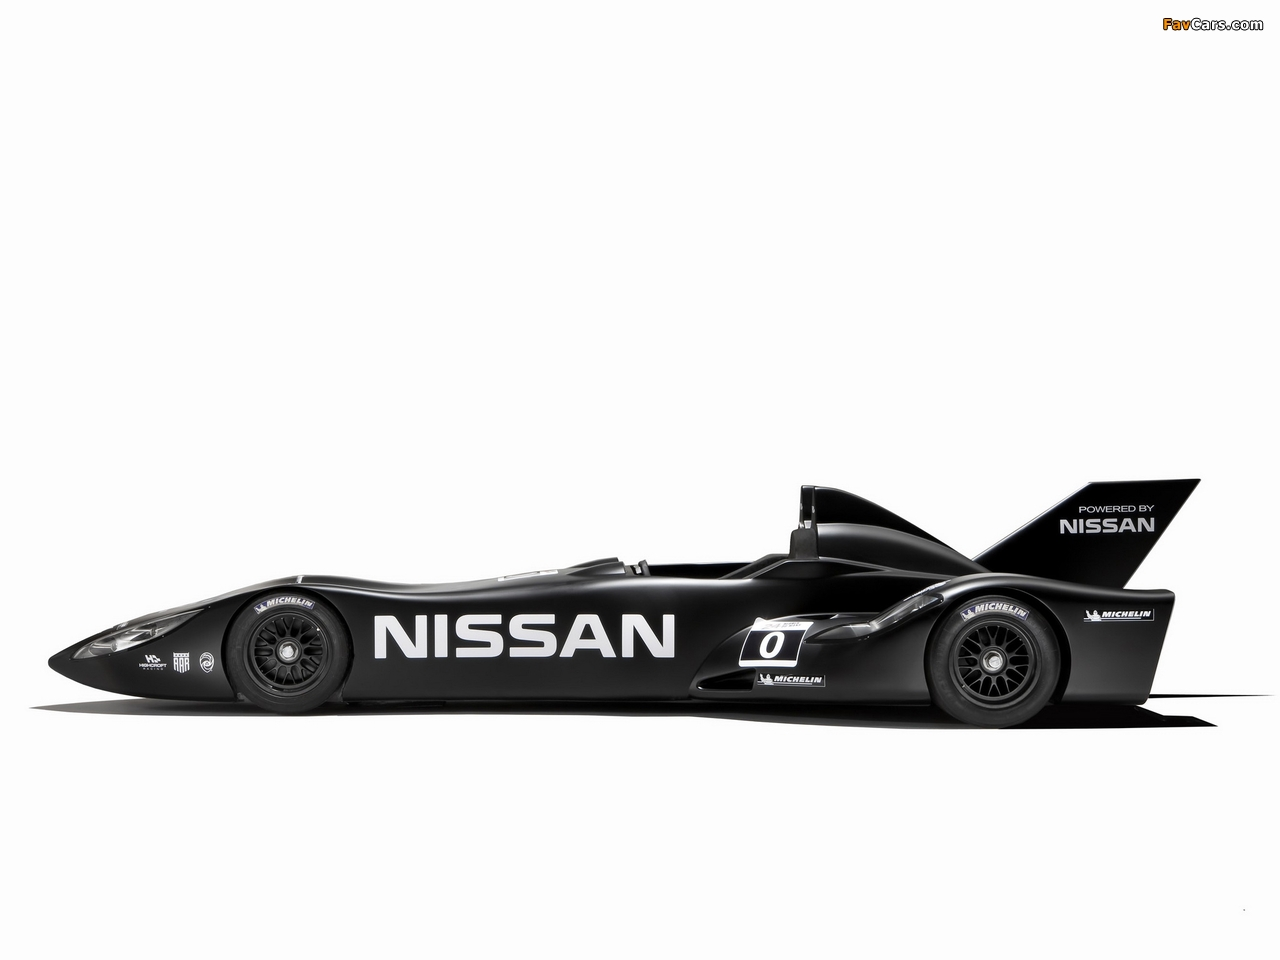 Nissan DeltaWing Experimental Race Car 2012 wallpapers (1280 x 960)